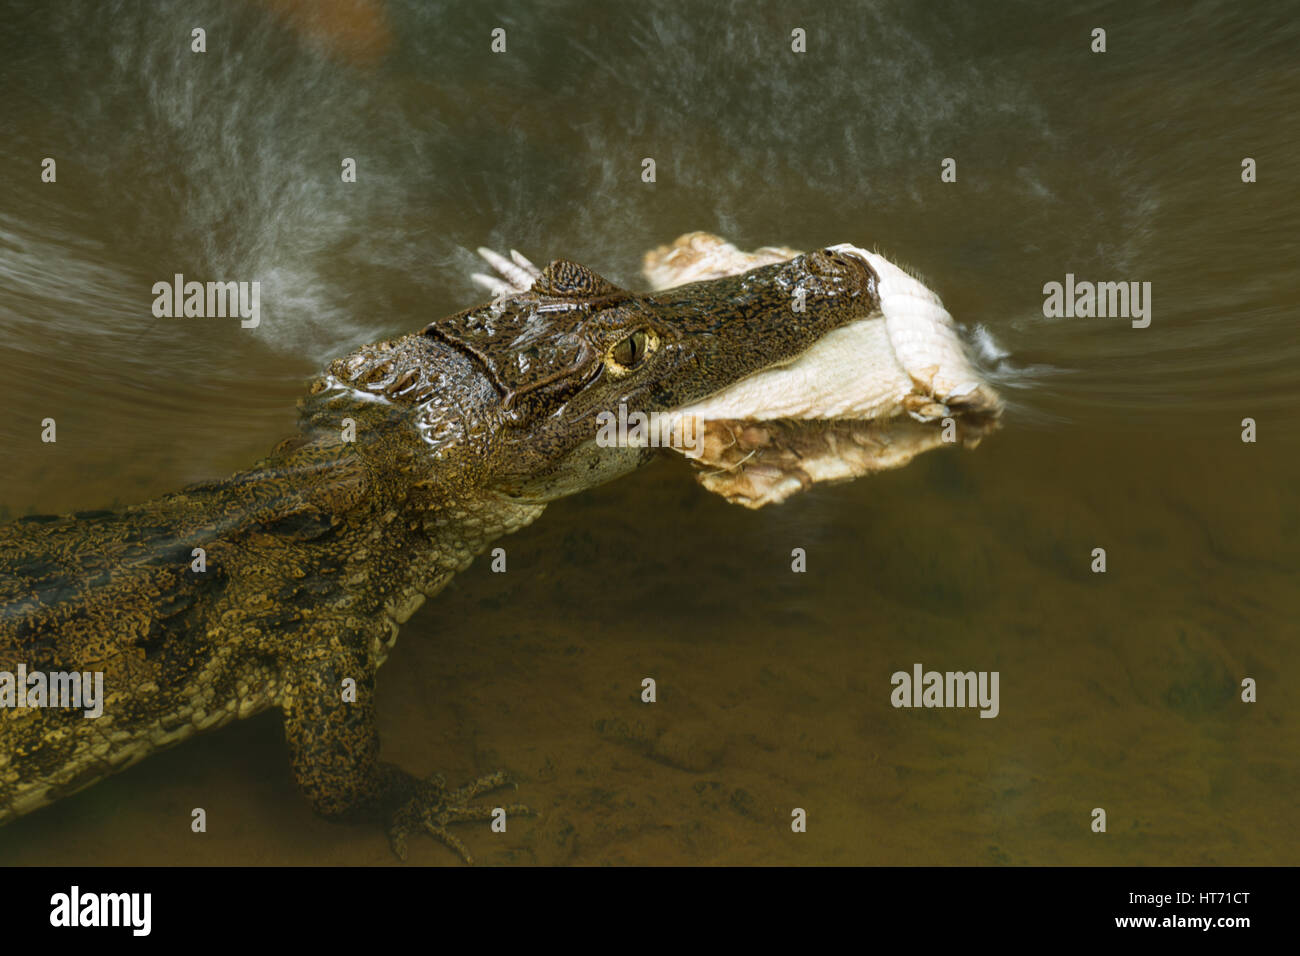 Spectacled Caiman, Caiman crocodilus, with a half-eaten armadillo carcass in a stream in the Selva Verde Reserve - Stock Image